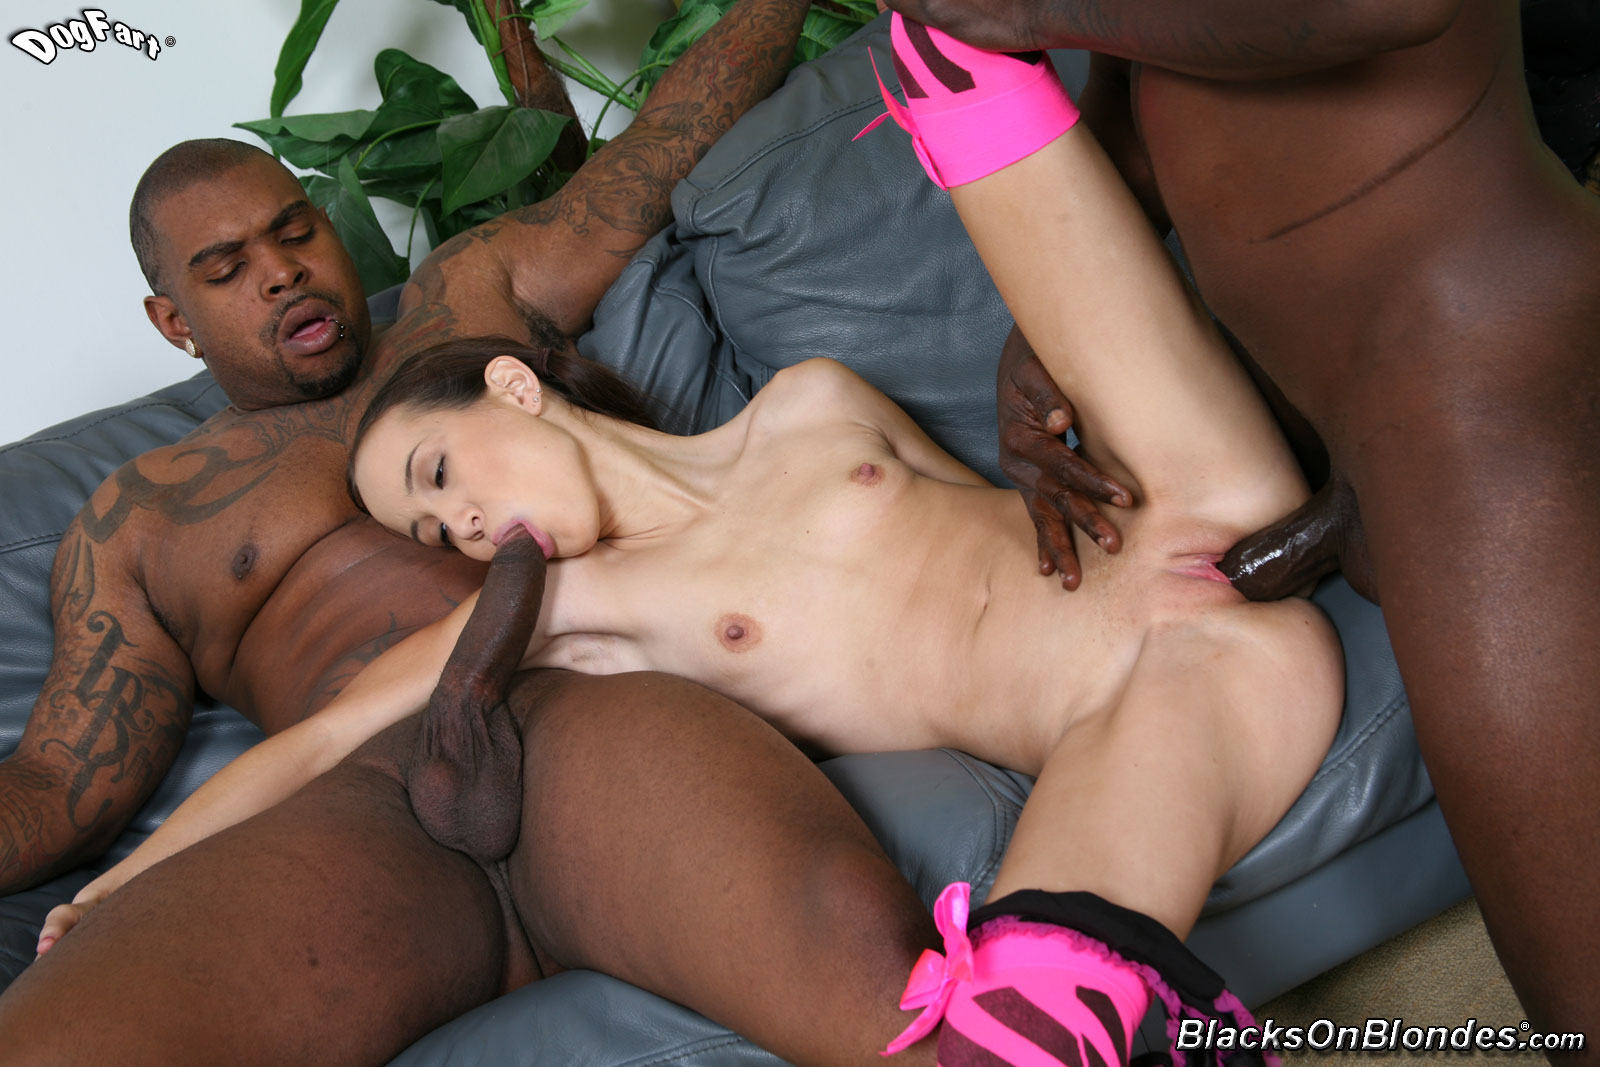 Black monster fuck hot girl fucks videos